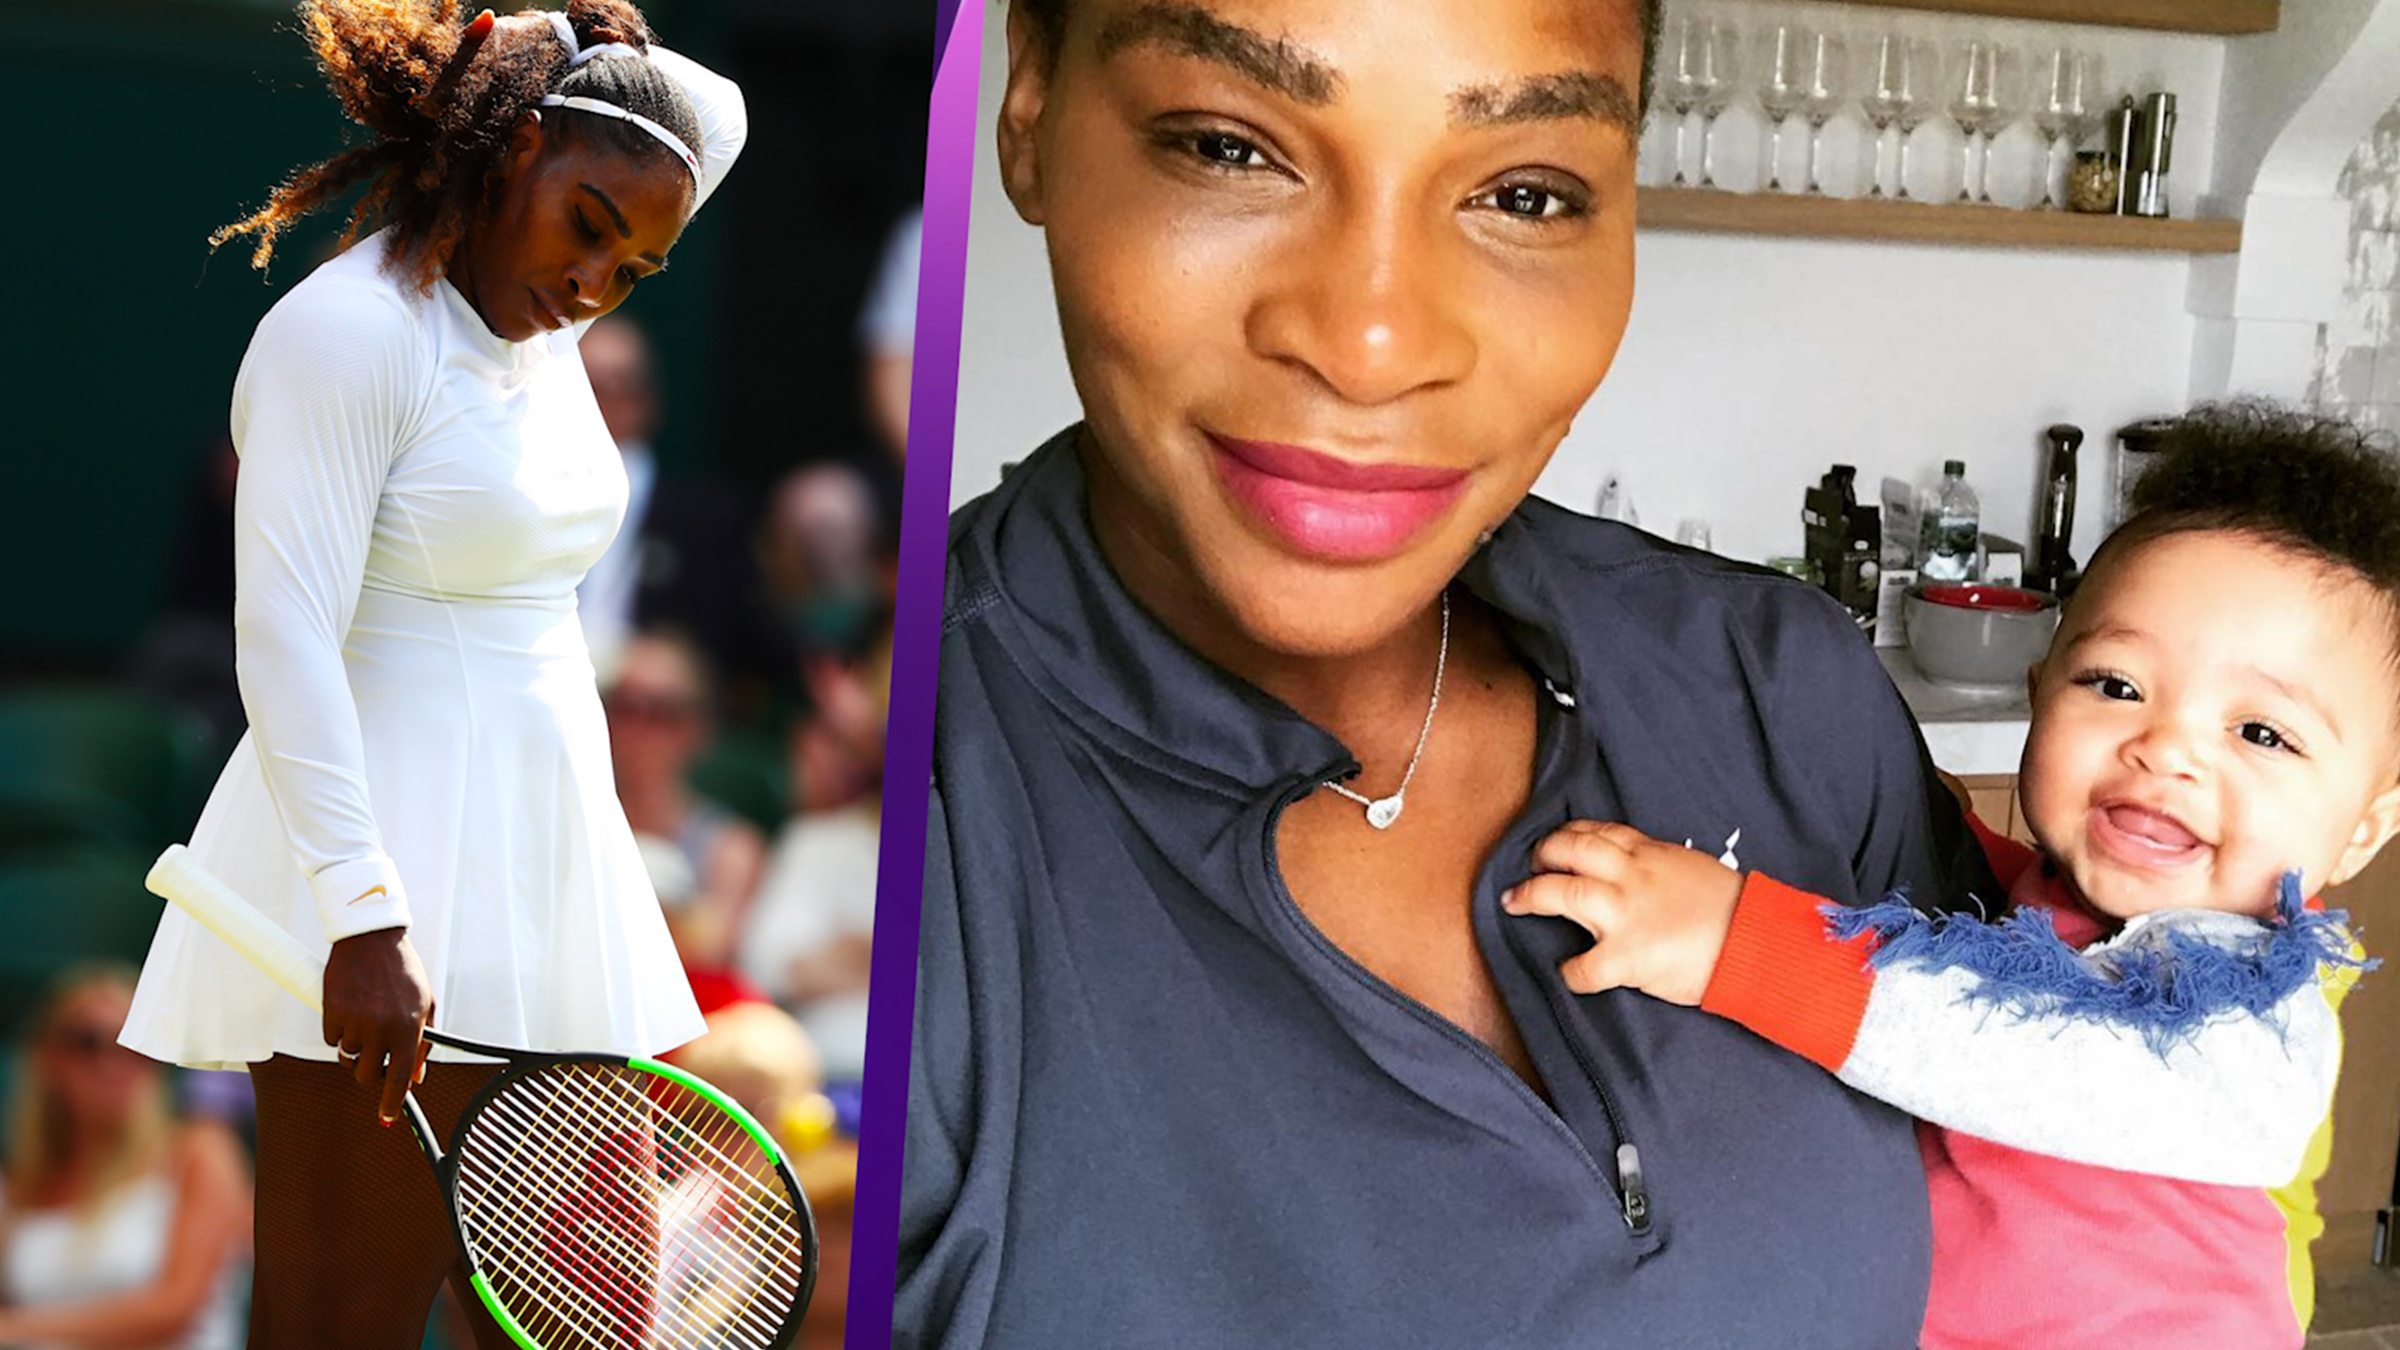 Serena Williams 'Cried' After Missing Her Daughter's First Steps While Training At Wimbledon Read more at http://www.accessonline.com/articles/serena-williams-cried-after-missing-her-daughters-first-steps-while-training-wimbledon/#xxzhLJ2YhBysICEp.99